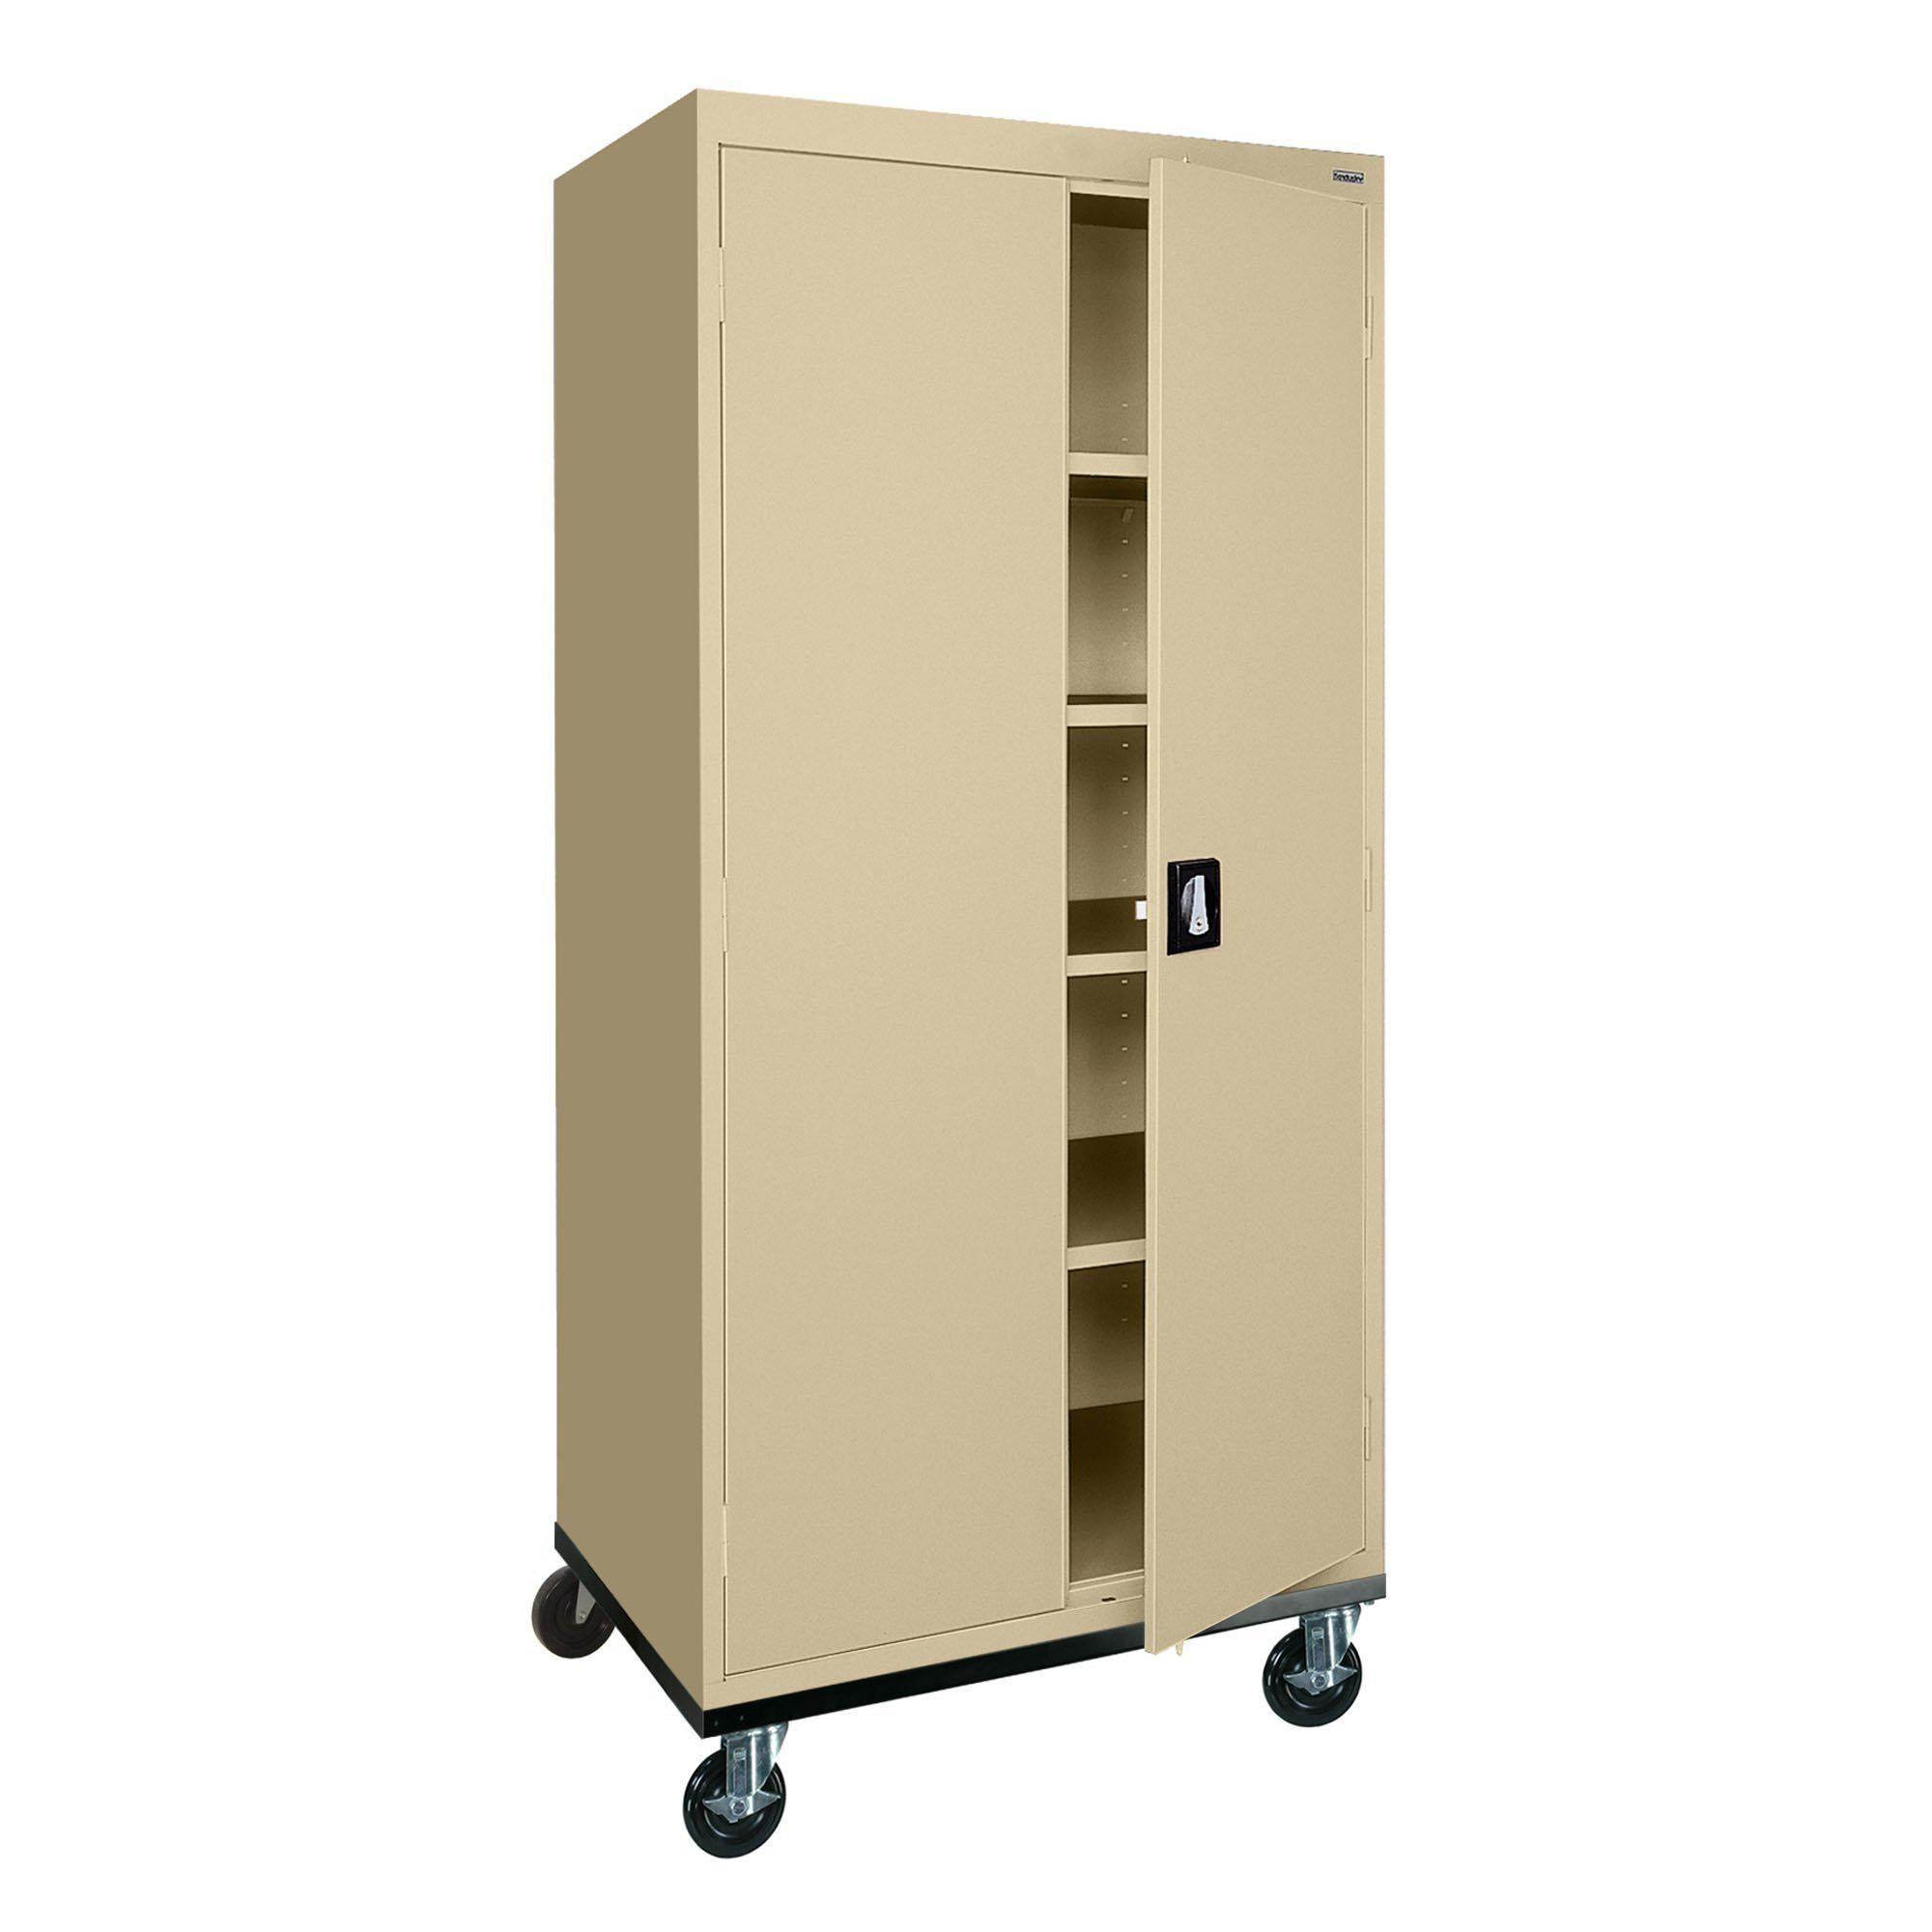 Transport Series Storage Cabinet, 30 x 24 x 66